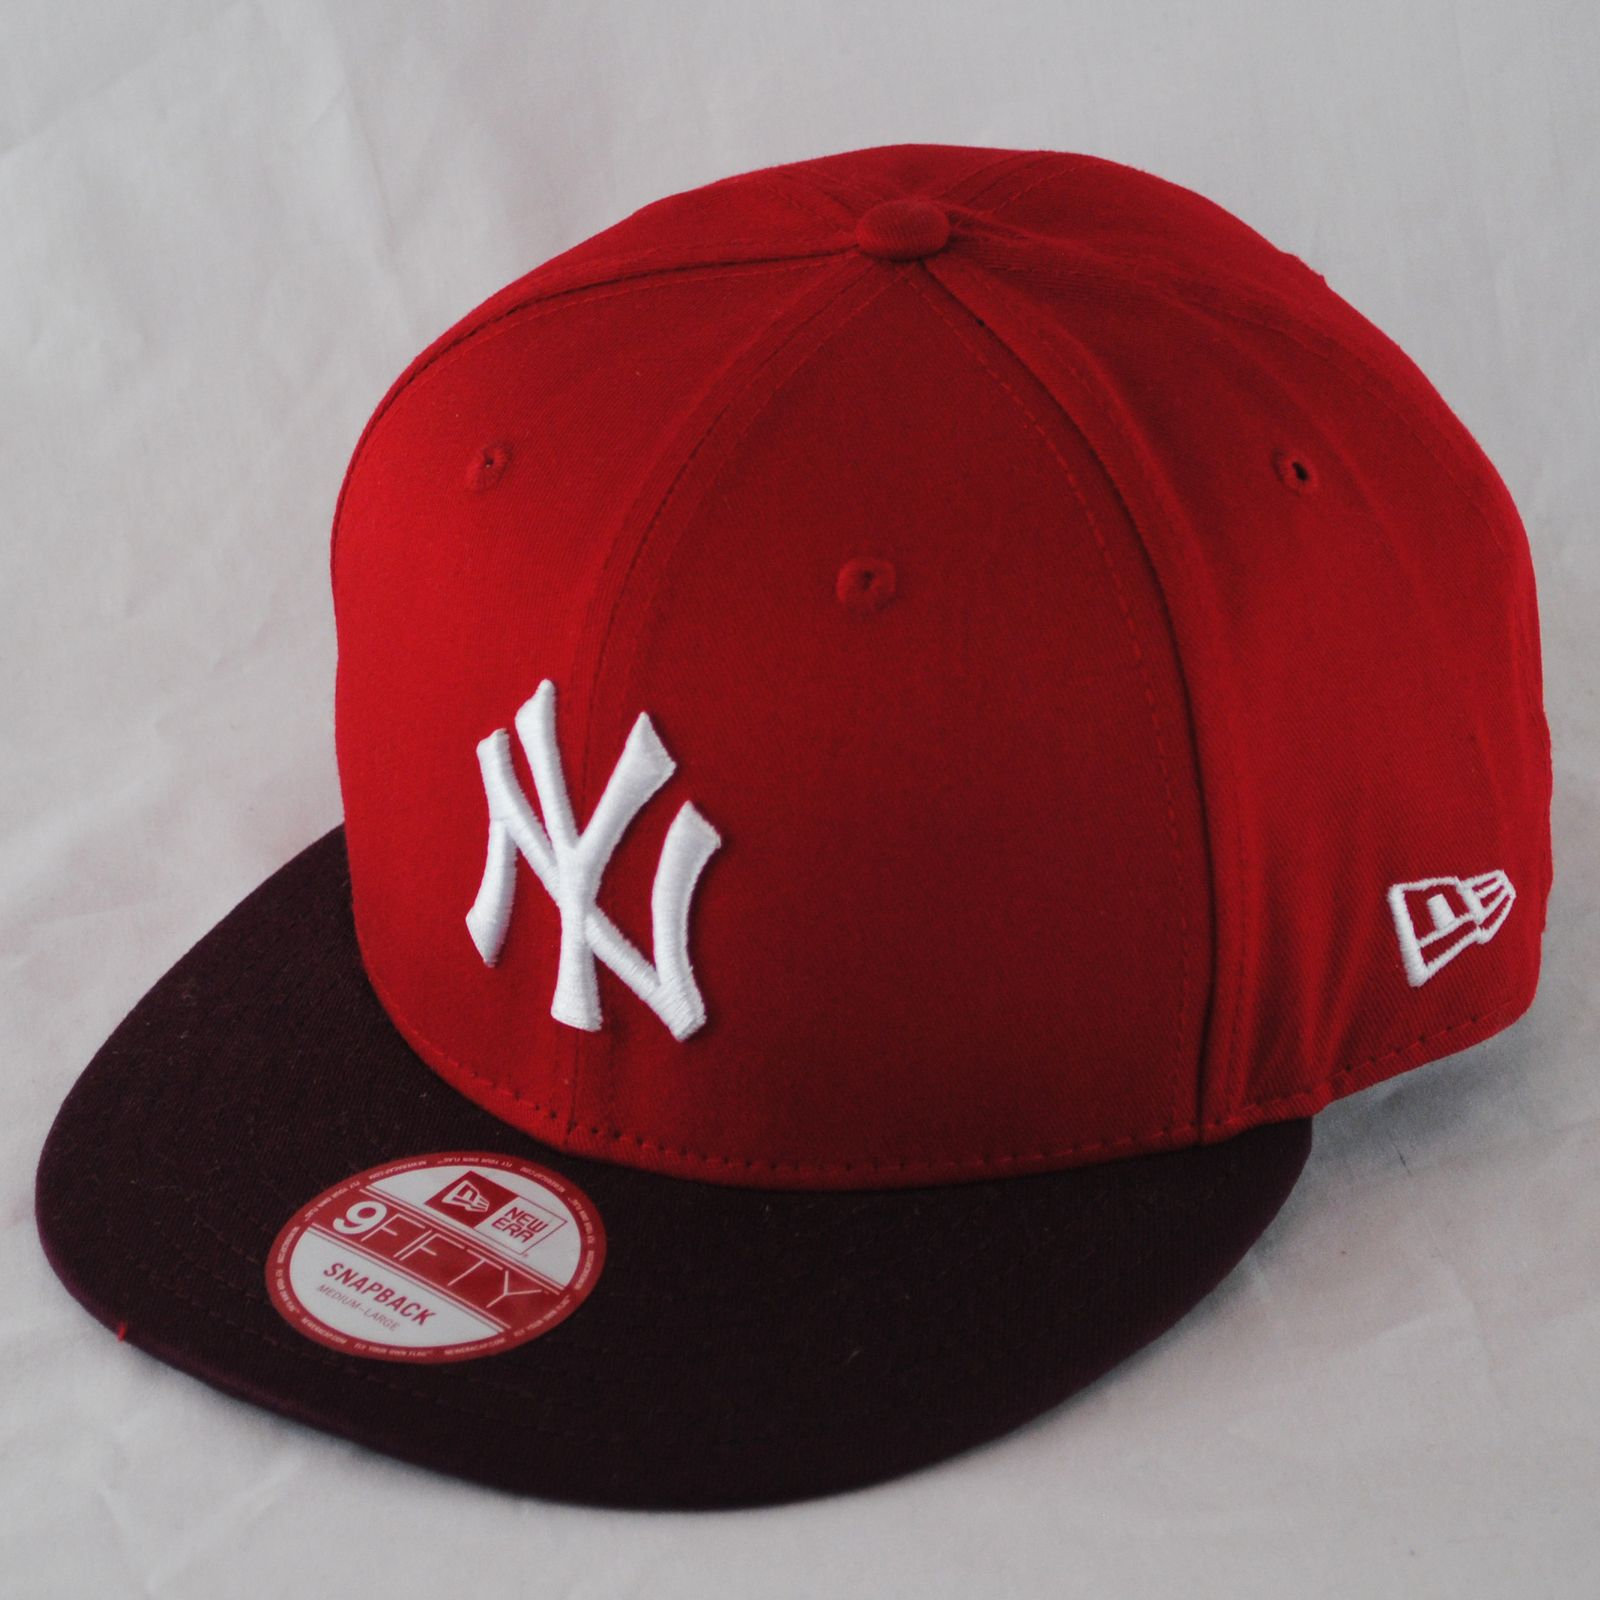 New Era 9fifty NY Yankees Mono Block Red Burgundy Snapback Hat Cap ... e96dee0bcc1